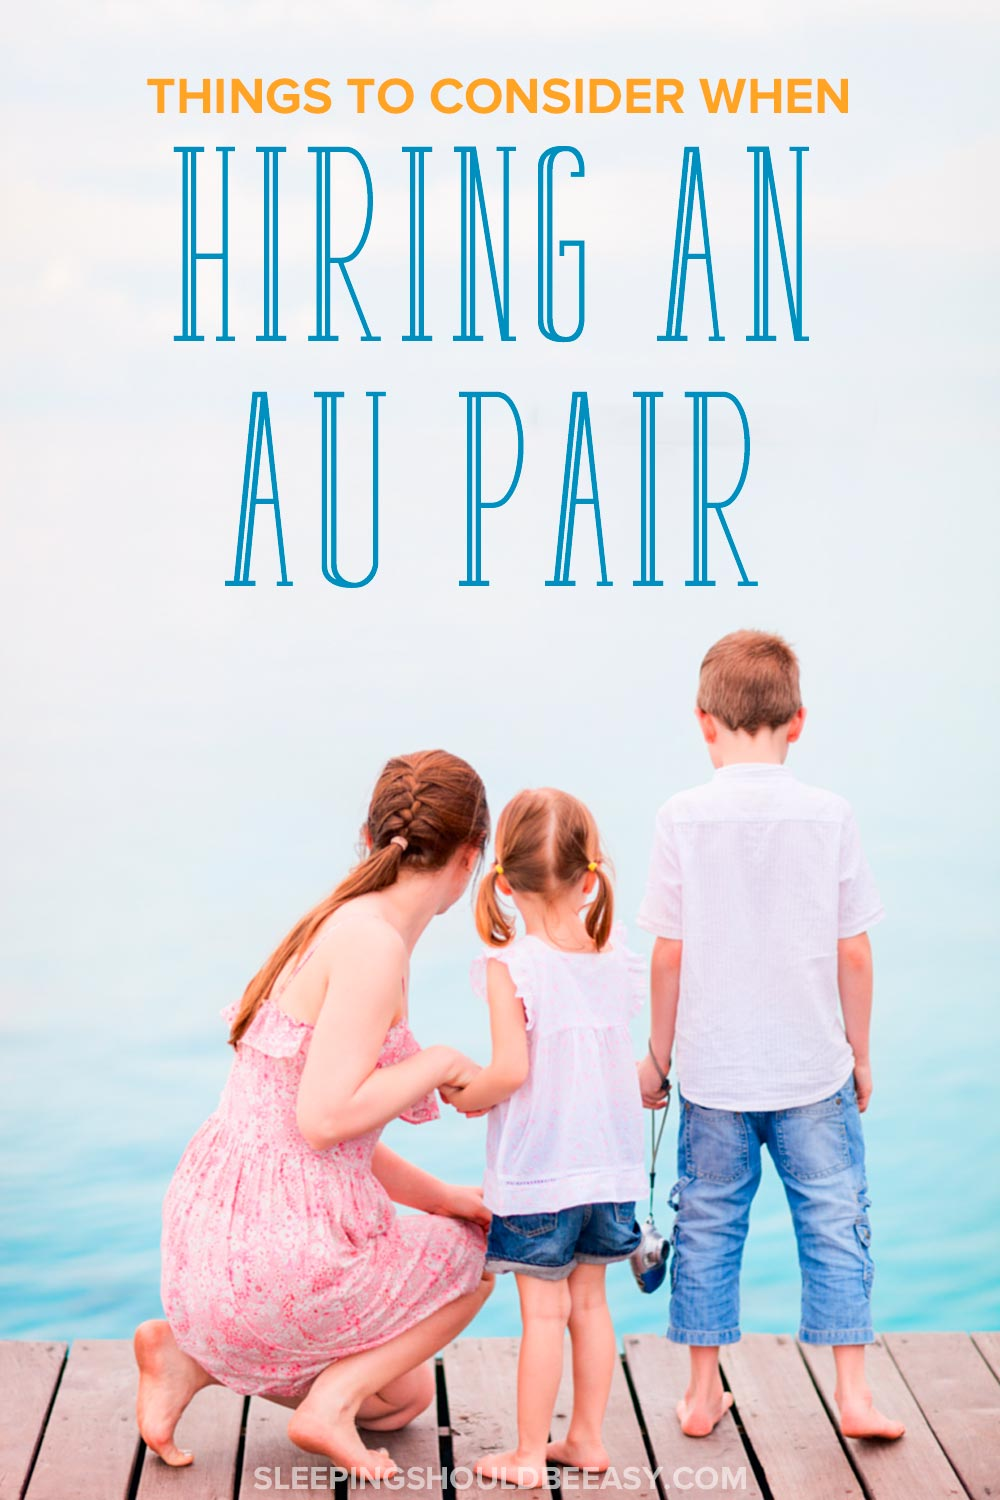 Hiring an Au pair can be a great option to your child care needs. Before you decide, here's what you need to consider when hiring an Au pair.